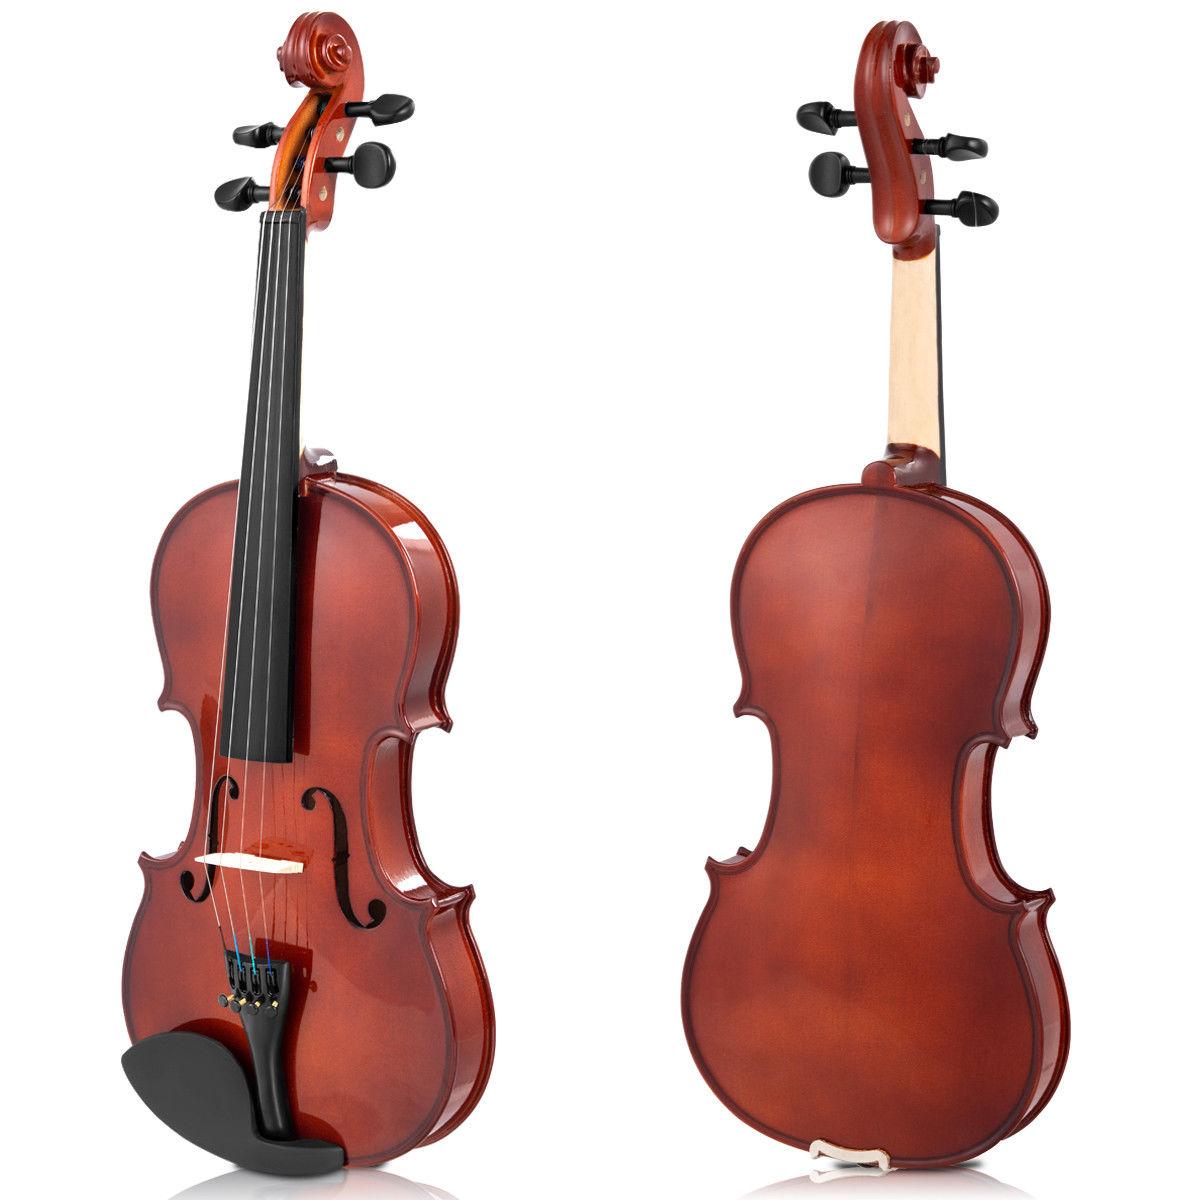 Full Size 4/4 Violin Solid Wood w/ Hard Case Bow Rosin Bridge Student Starter - image 8 de 10